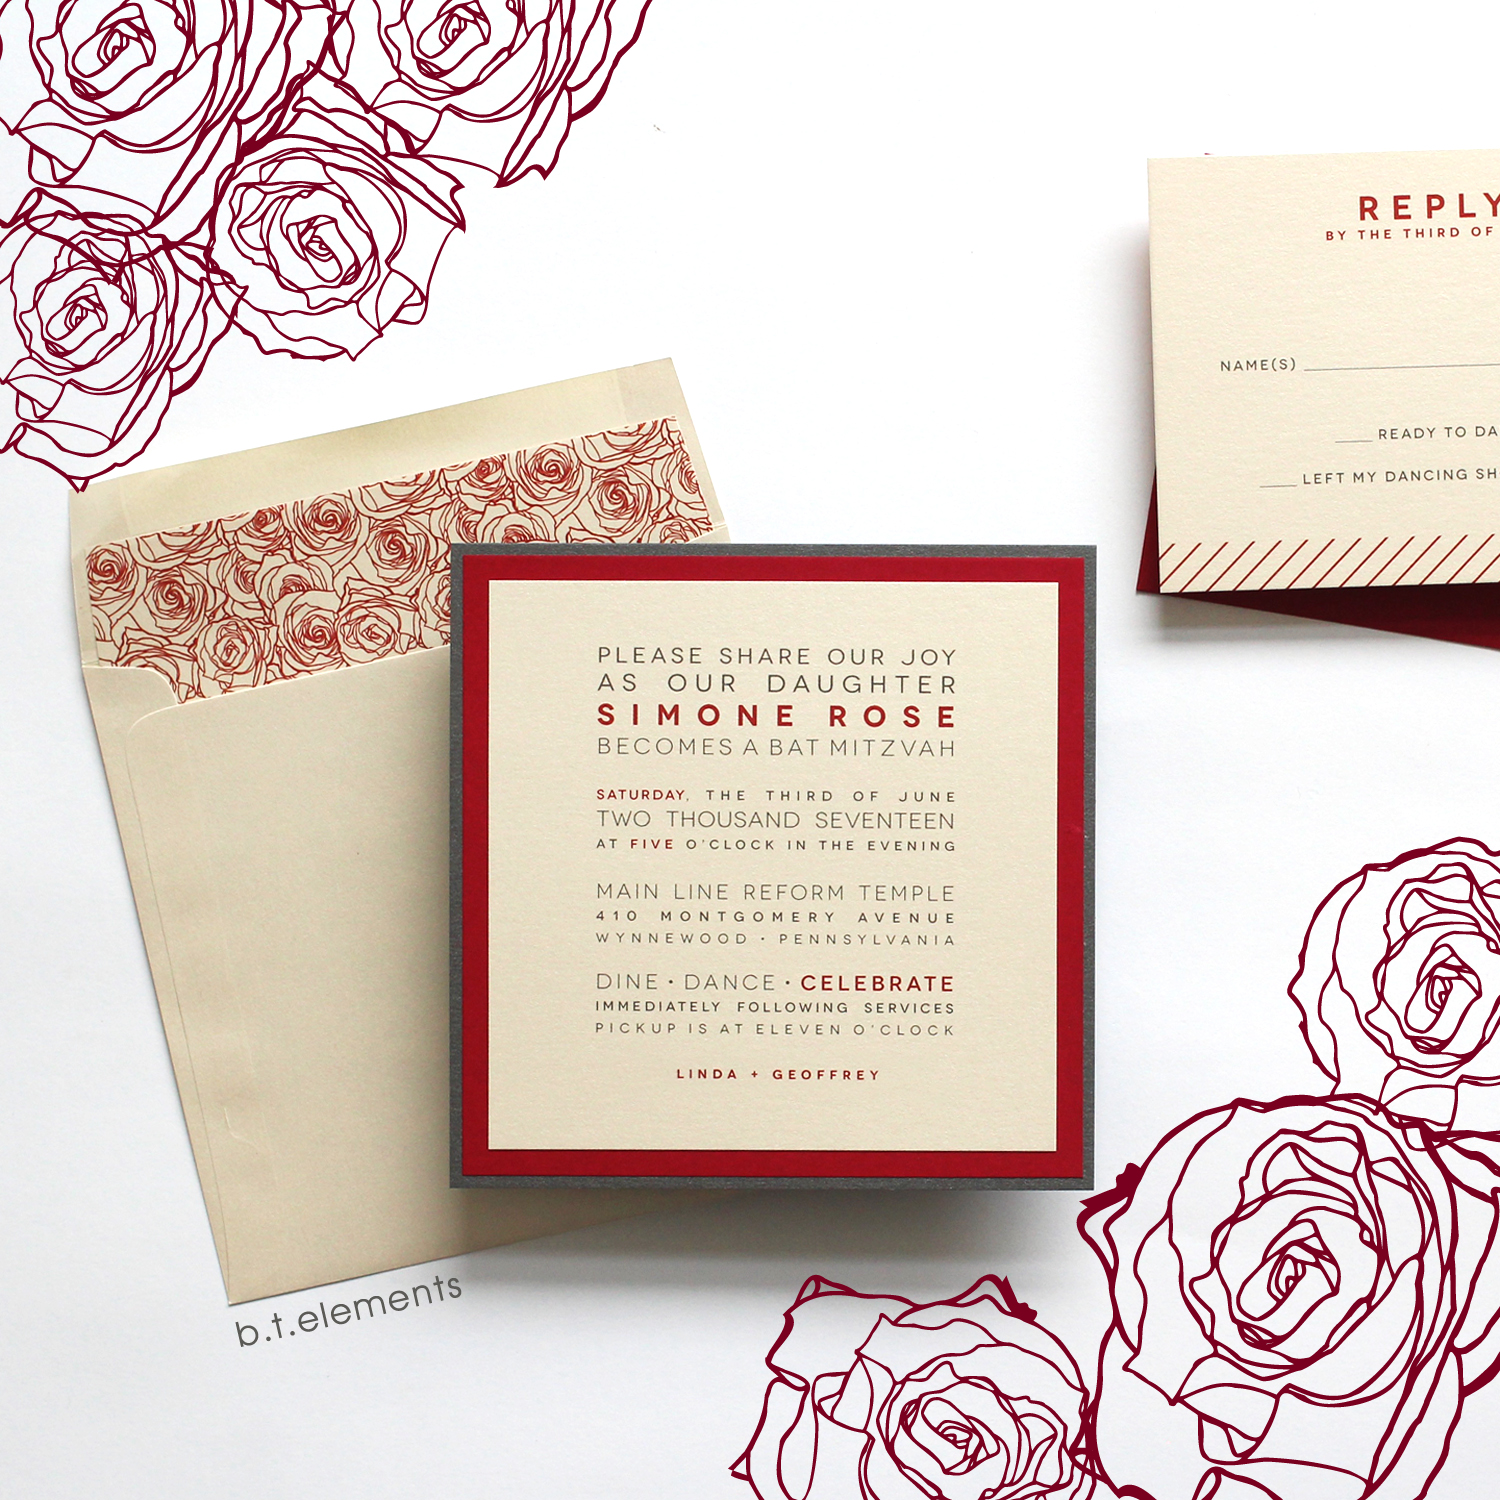 Simone's Bat Mitzvah Invitation, 2017   Store: The Paperia in Ardmore, PA